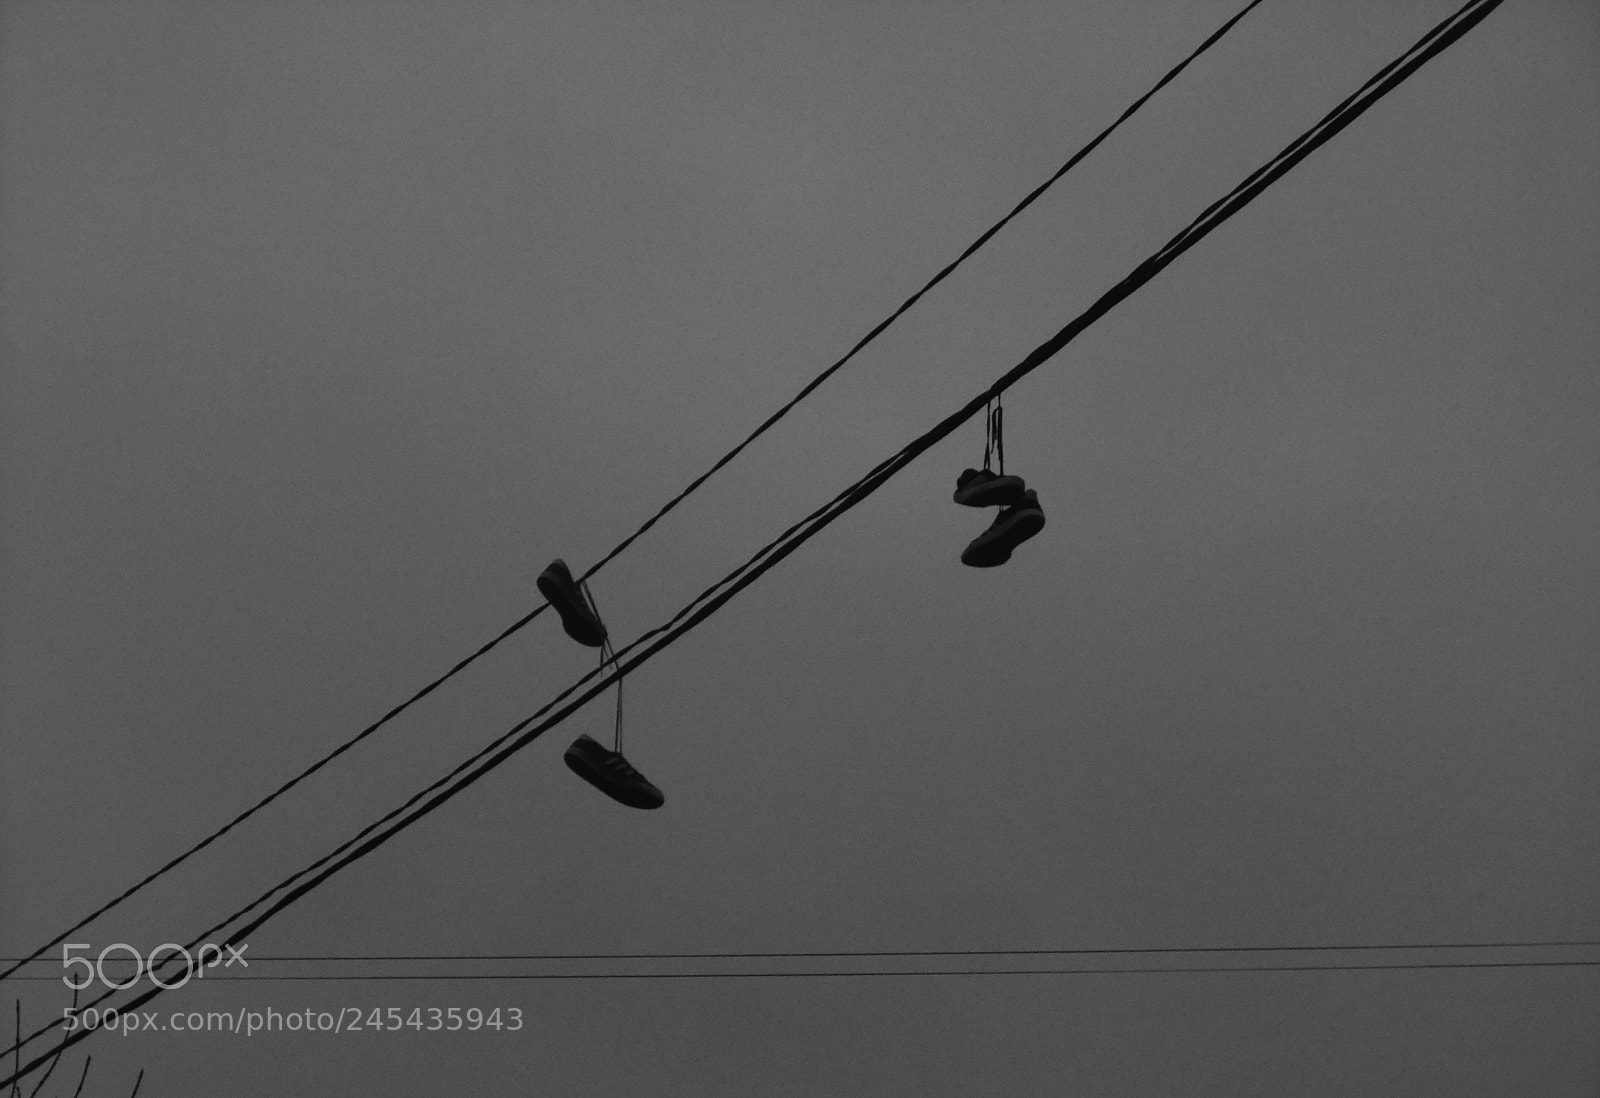 """FujiFilm FinePix JZ500 (FinePix JZ505) sample photo. """"Sneakers on wires"""" photography"""